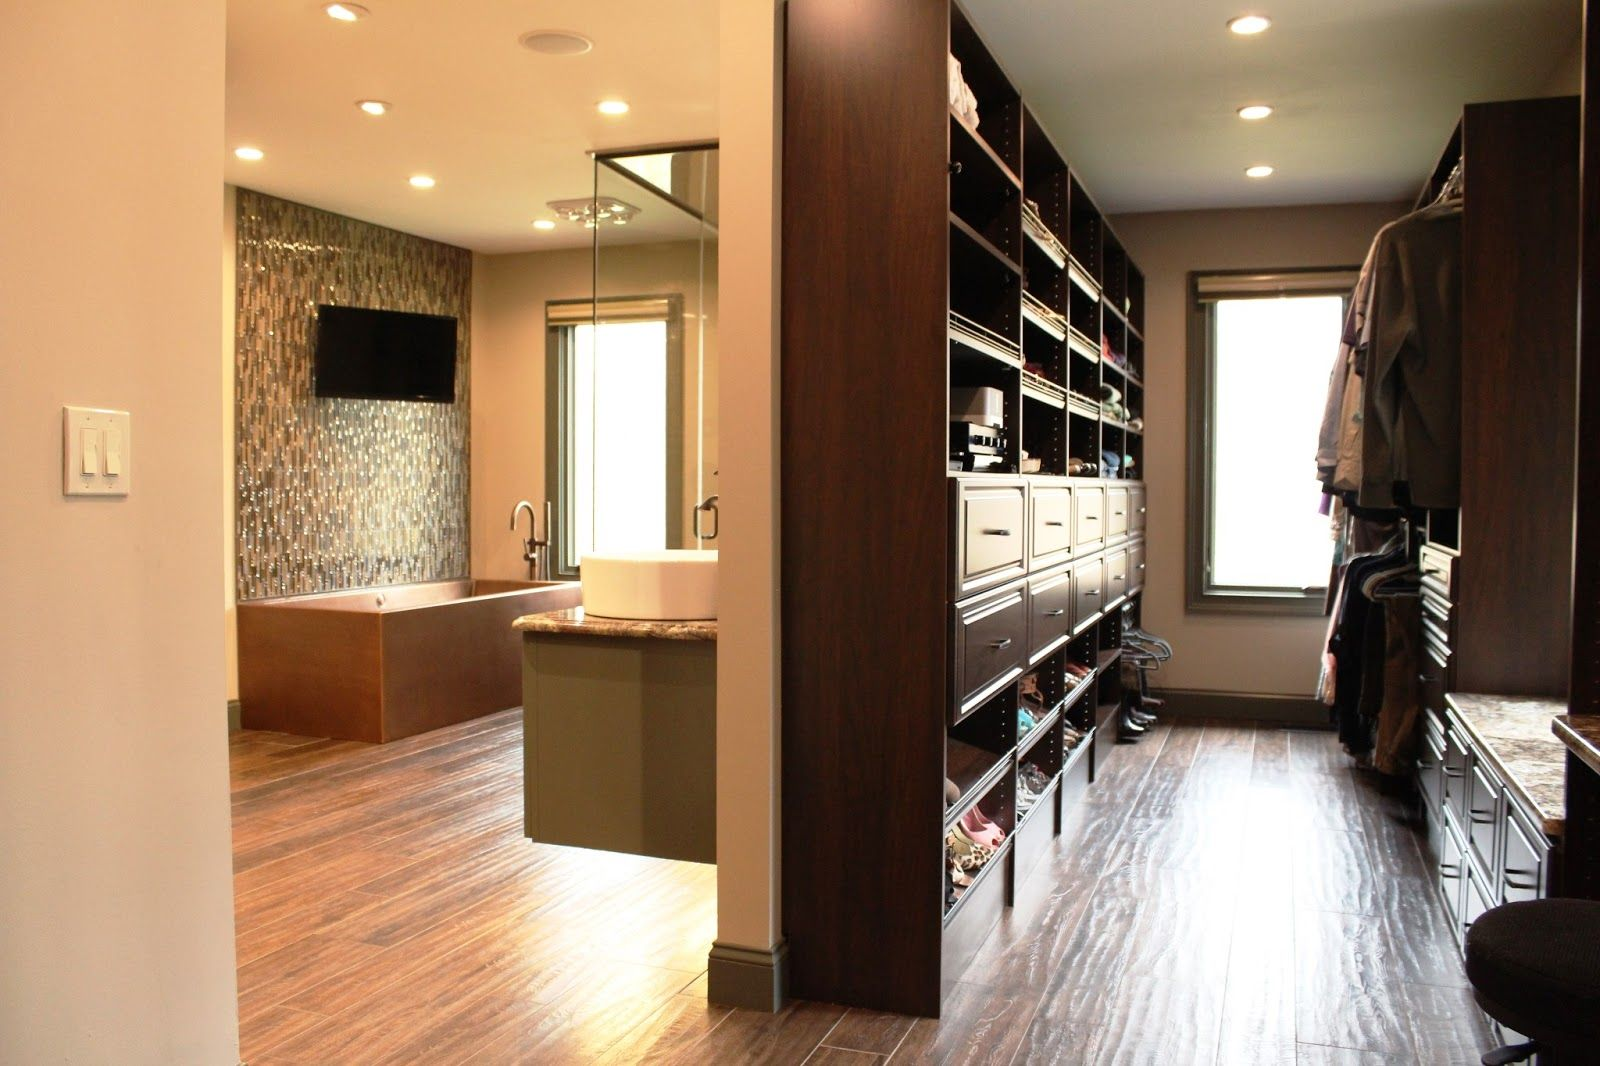 Luxury walk in closet pictures for inspiration impressive luxury walkin closet design with Tile in master bedroom closet